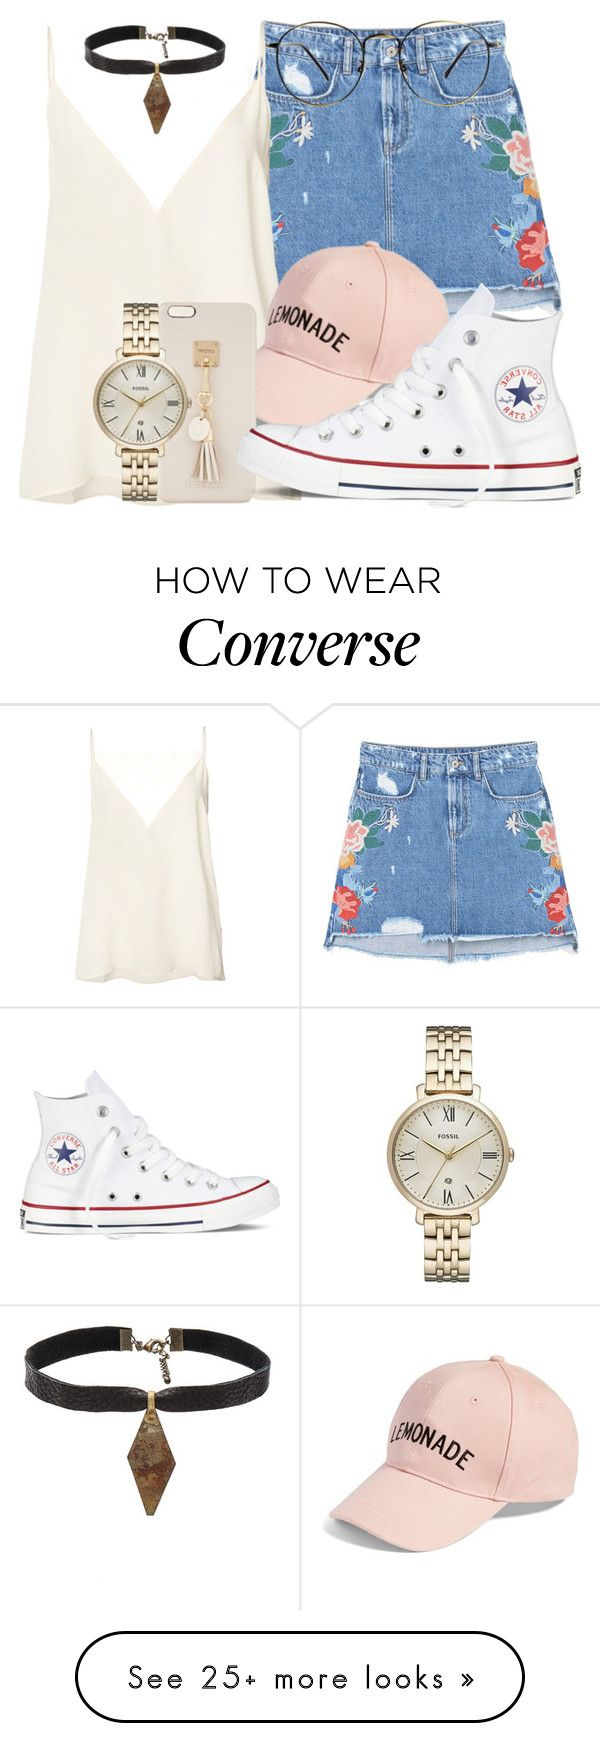 """""""67.7"""" by mallorimae on Polyvore featuring MANGO, Anine Bing, Amici Accessories, Iphoria, Converse, FOSSIL and Child Of Wild"""